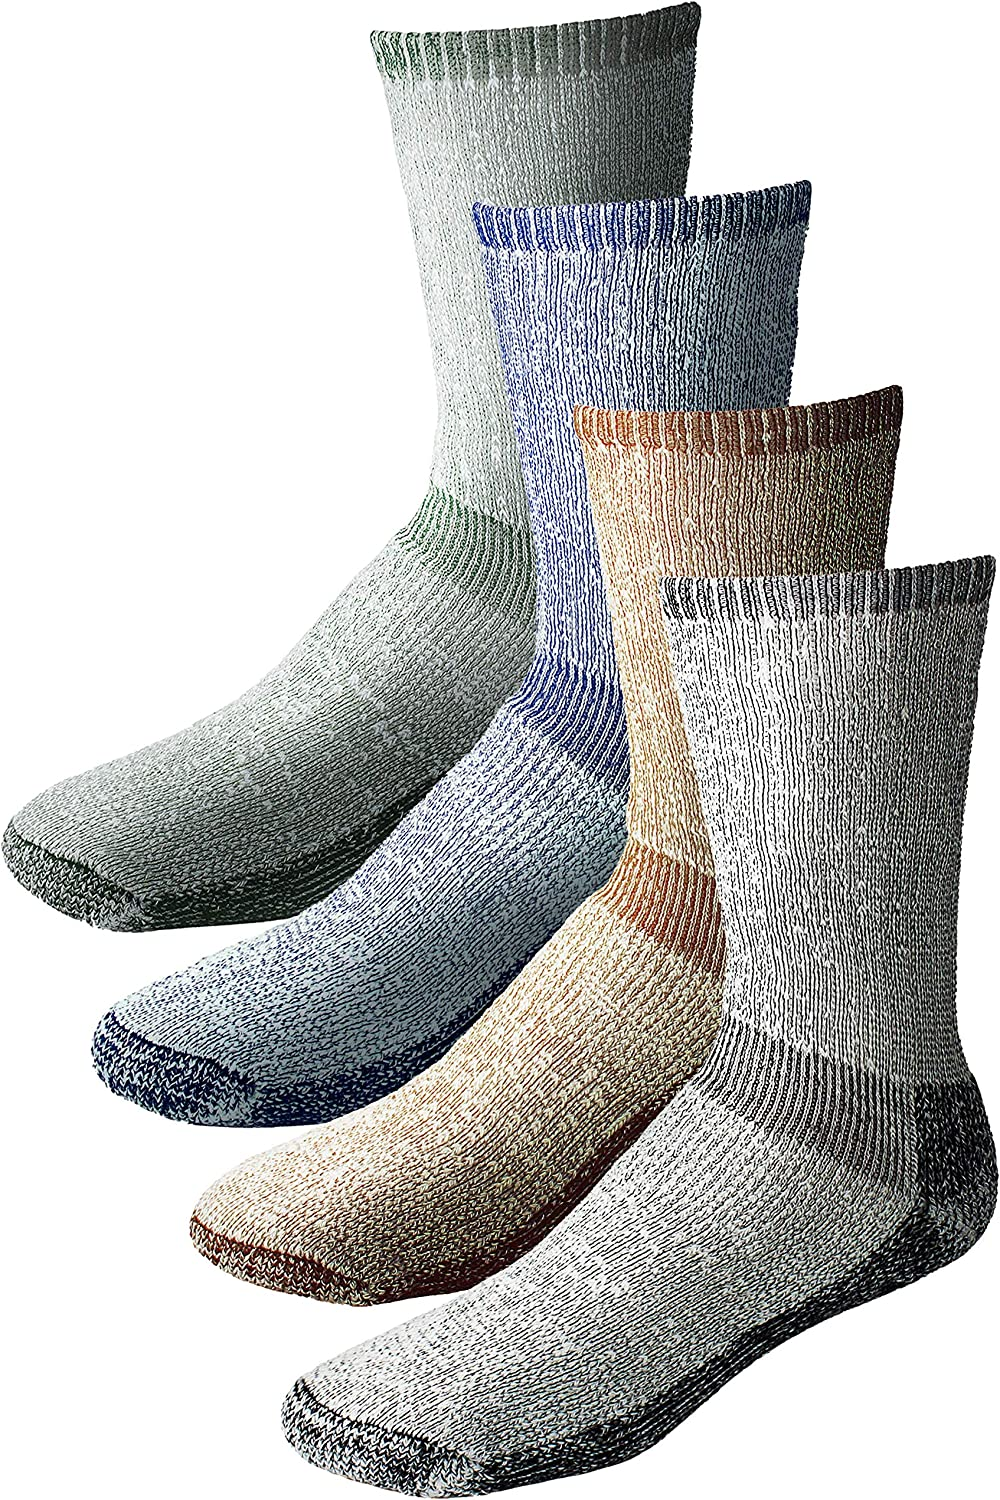 ECHOGORGE Expedition Heavy Weight Merino Max 58% OFF Wool Pai Hiking 4 Superior Socks